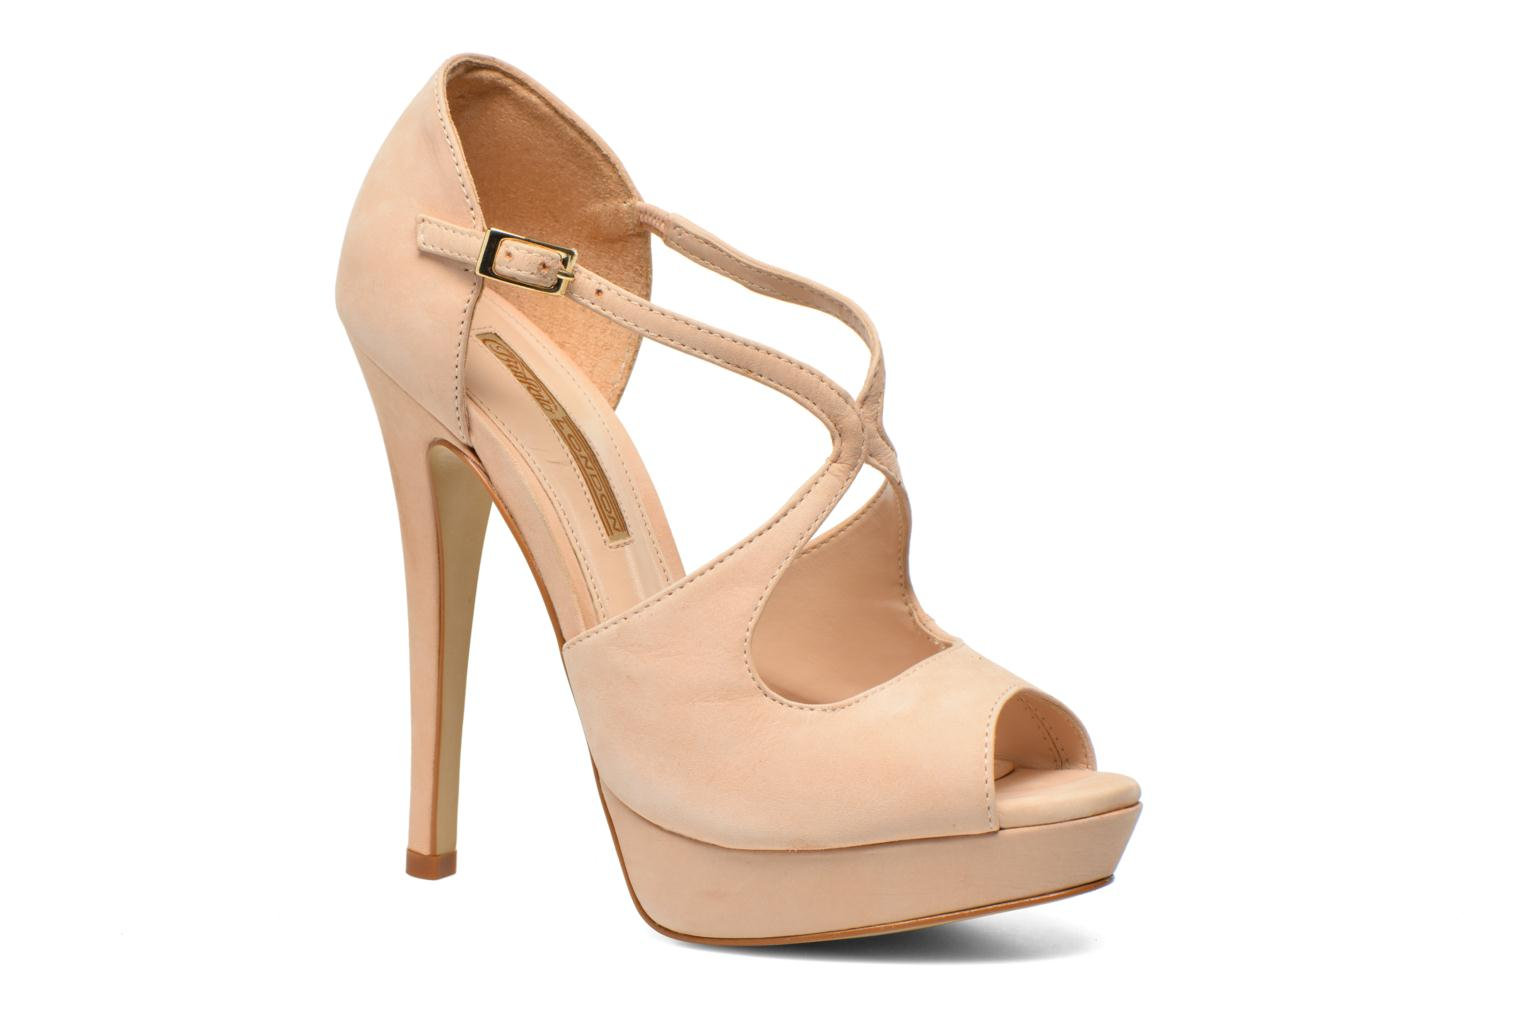 Marques Chaussure femme Buffalo femme Alicia Nude pink